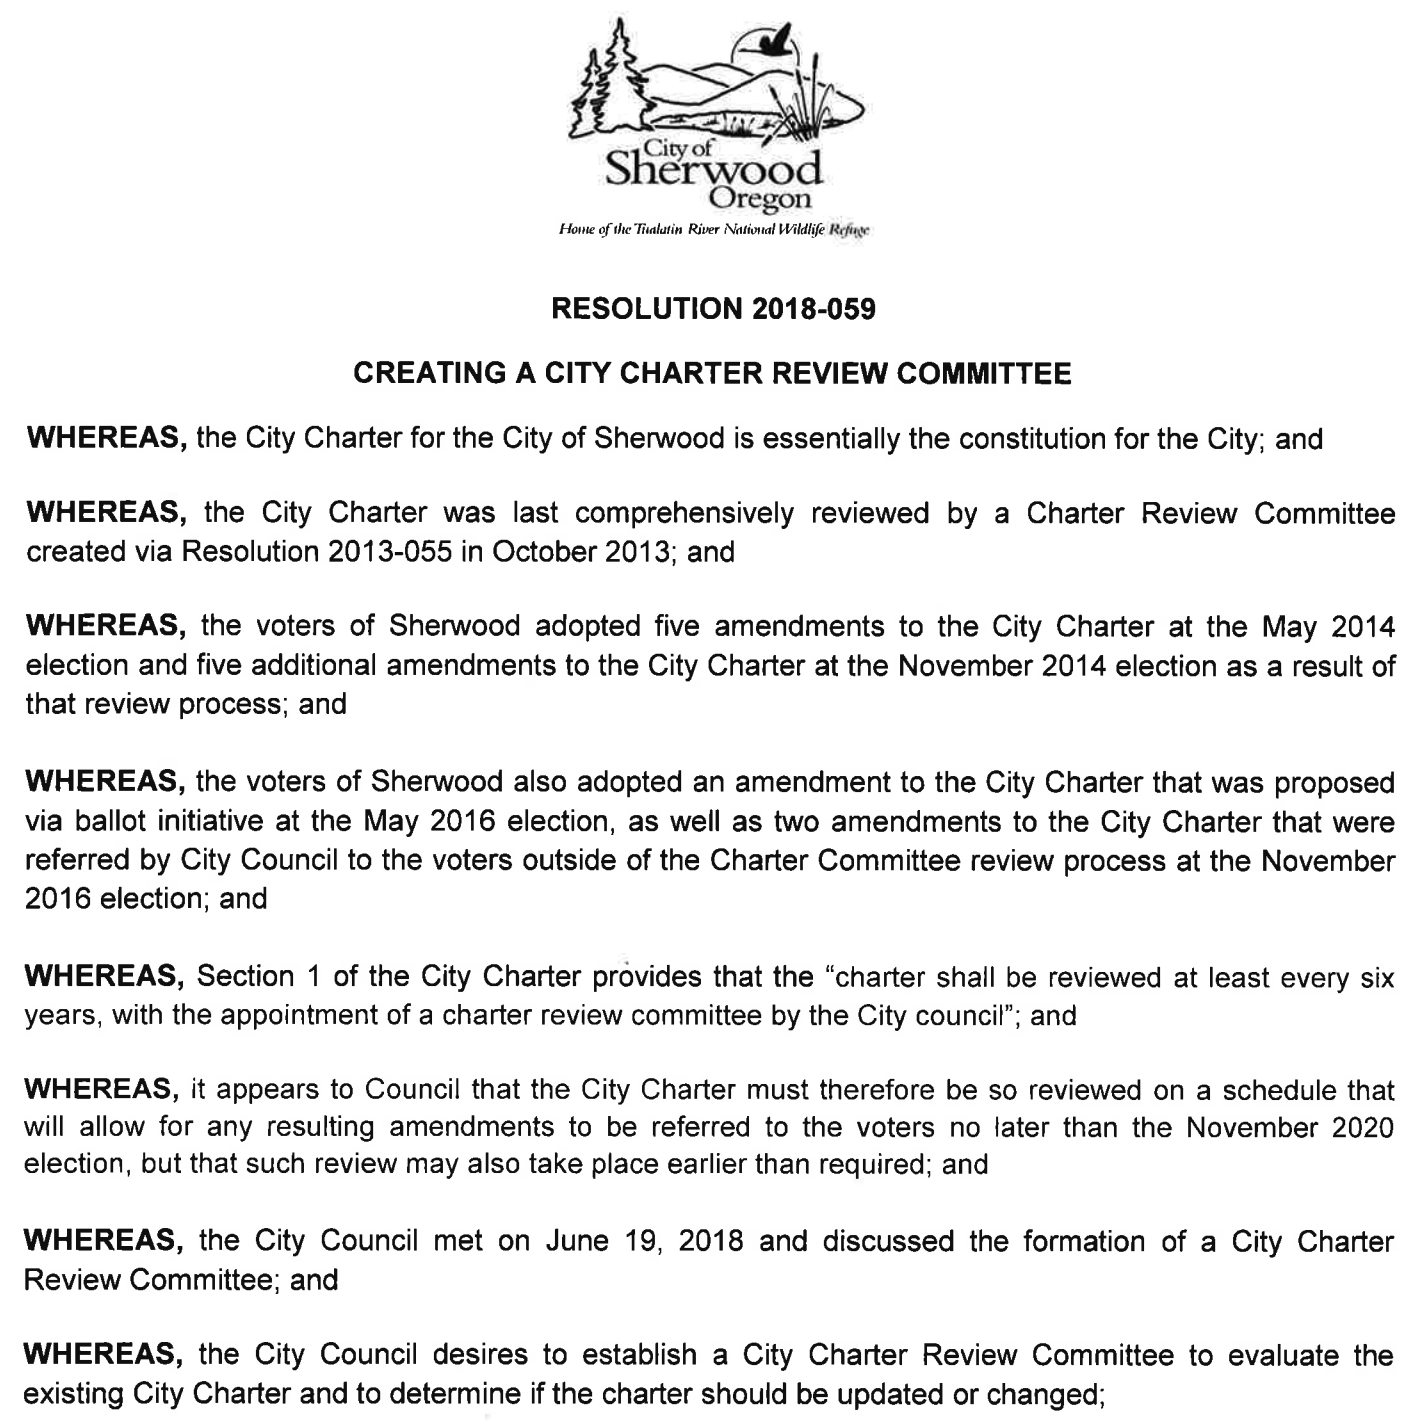 Resolution creating the City Charter Review Committee